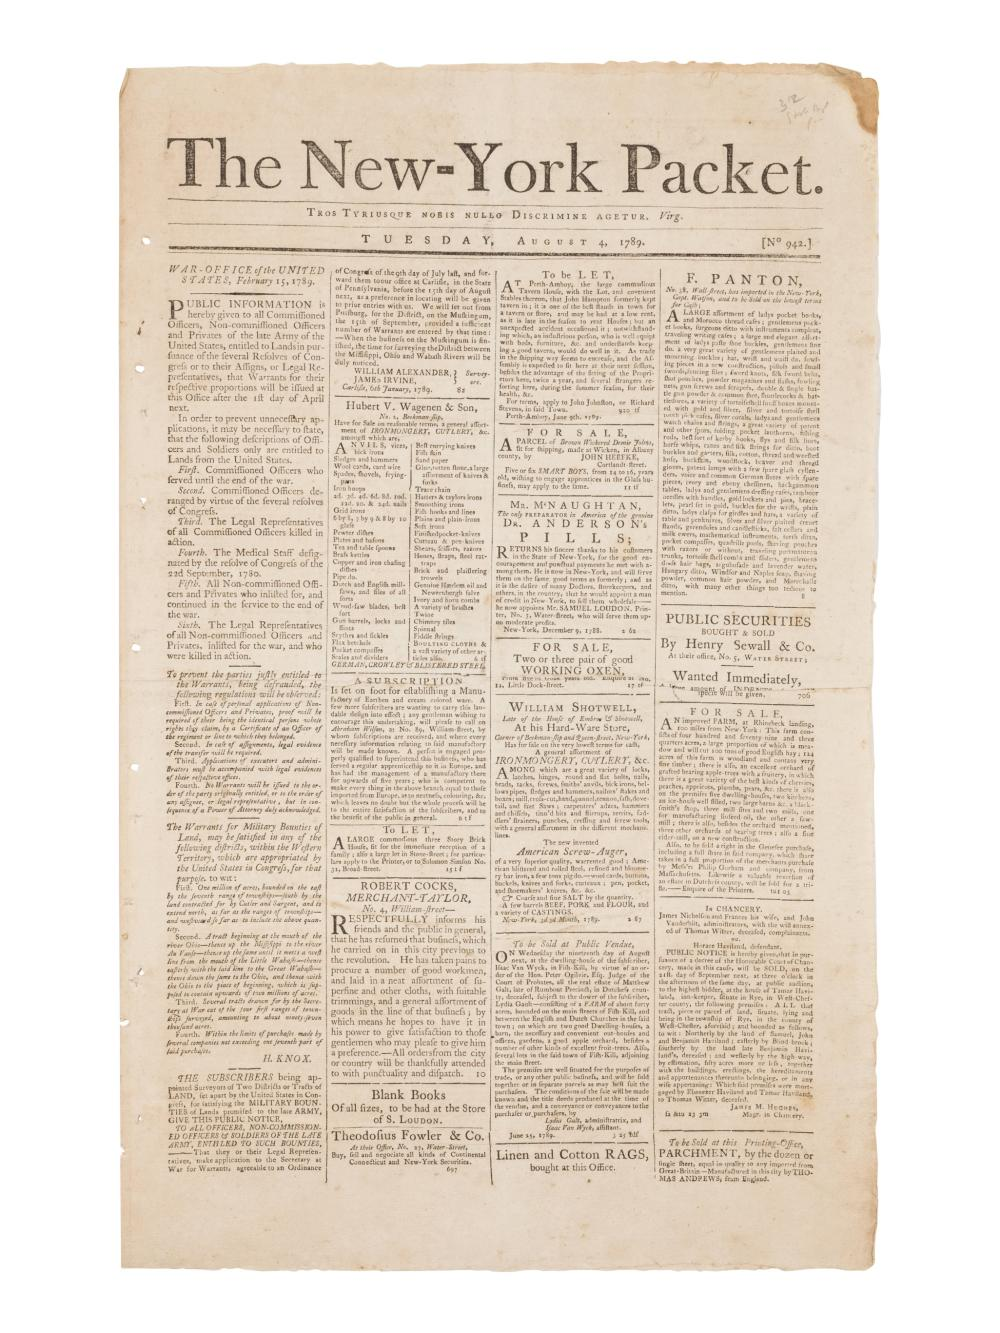 [NEWSPAPER - DEPARTMENT OF STATE]. The New York Packet. No. 942, Tuesday, August 4, 1789. New York: Samuel & John Loudon, 1789.